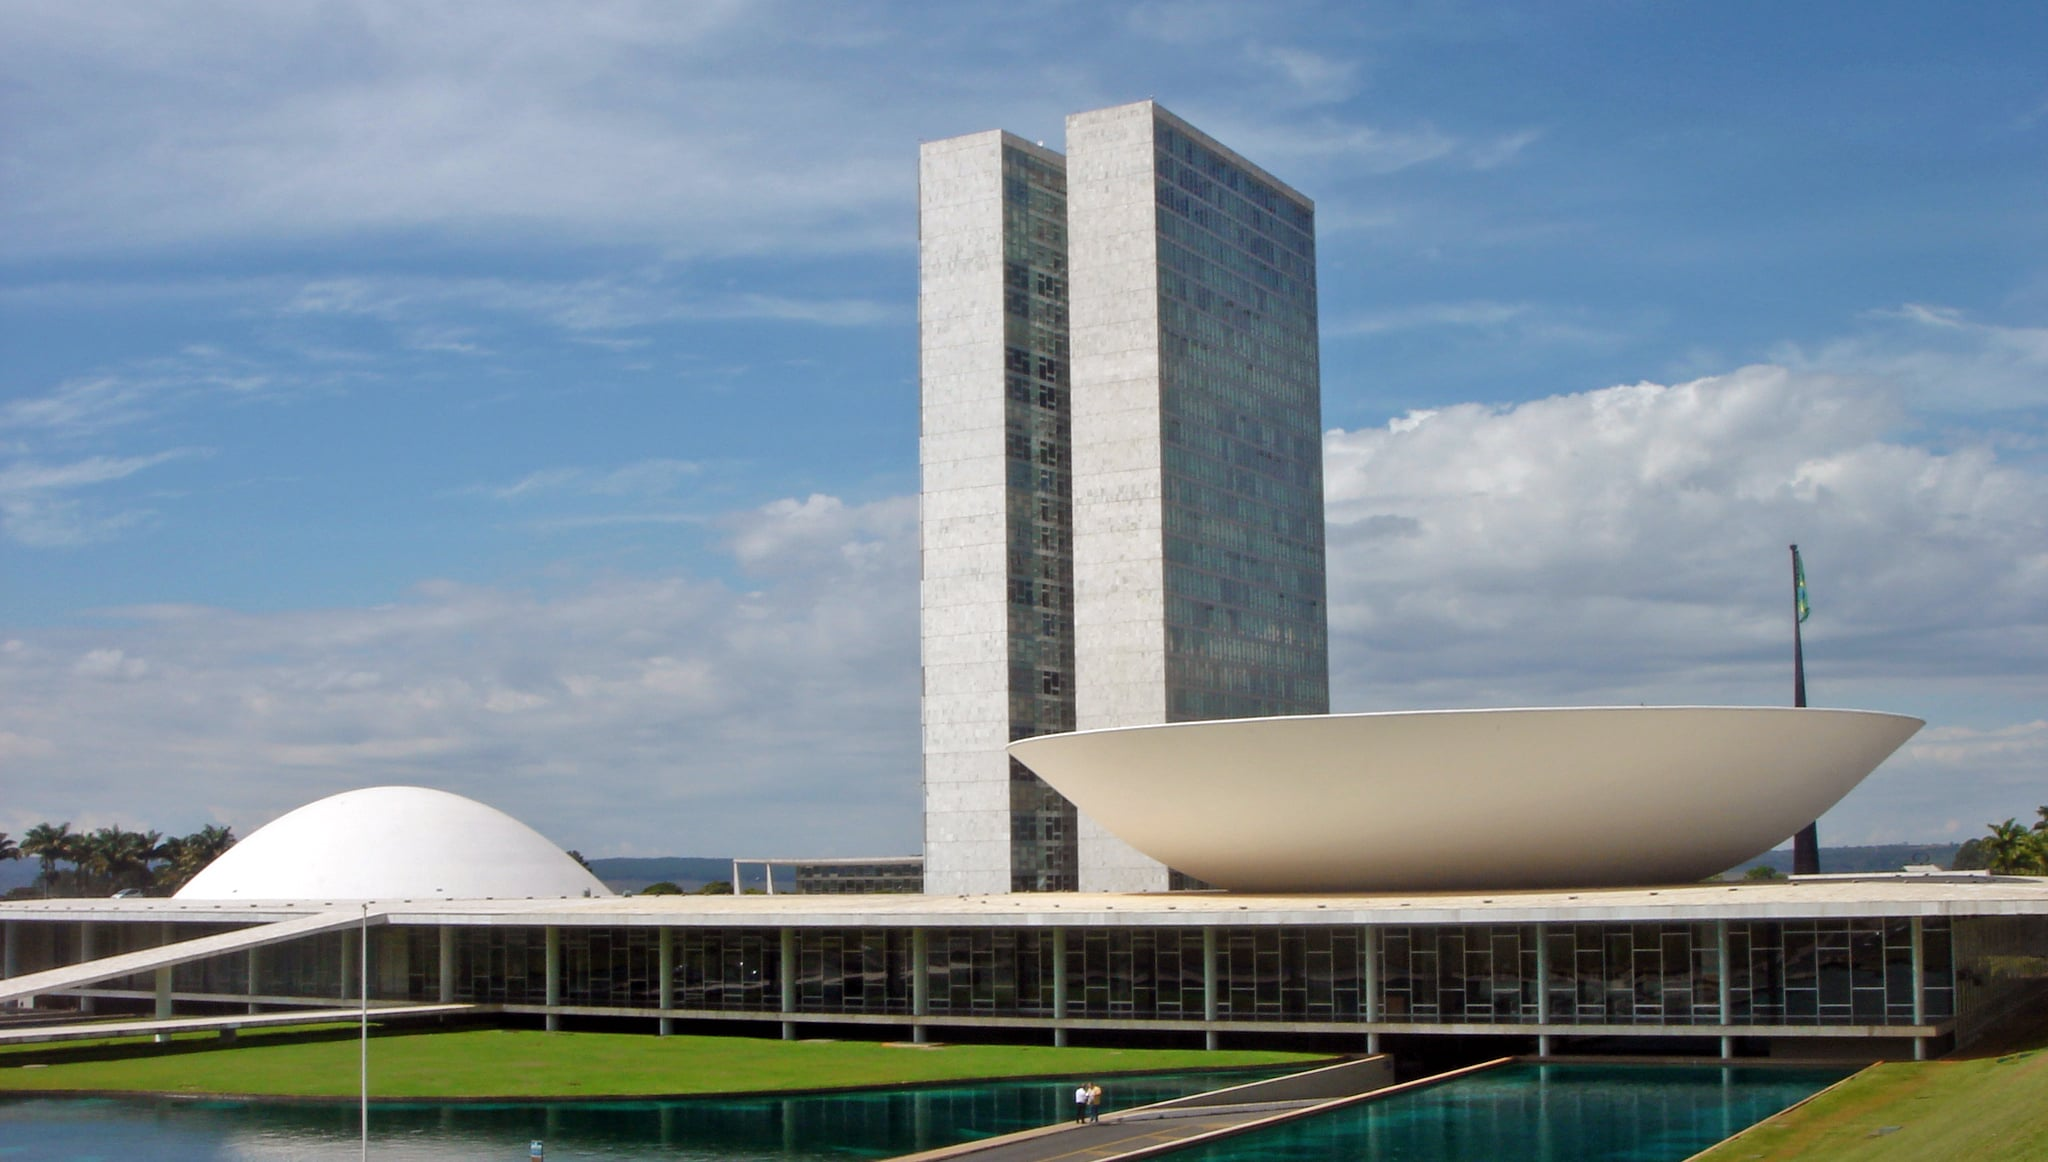 Brazil lower house approves controversial environmental bill